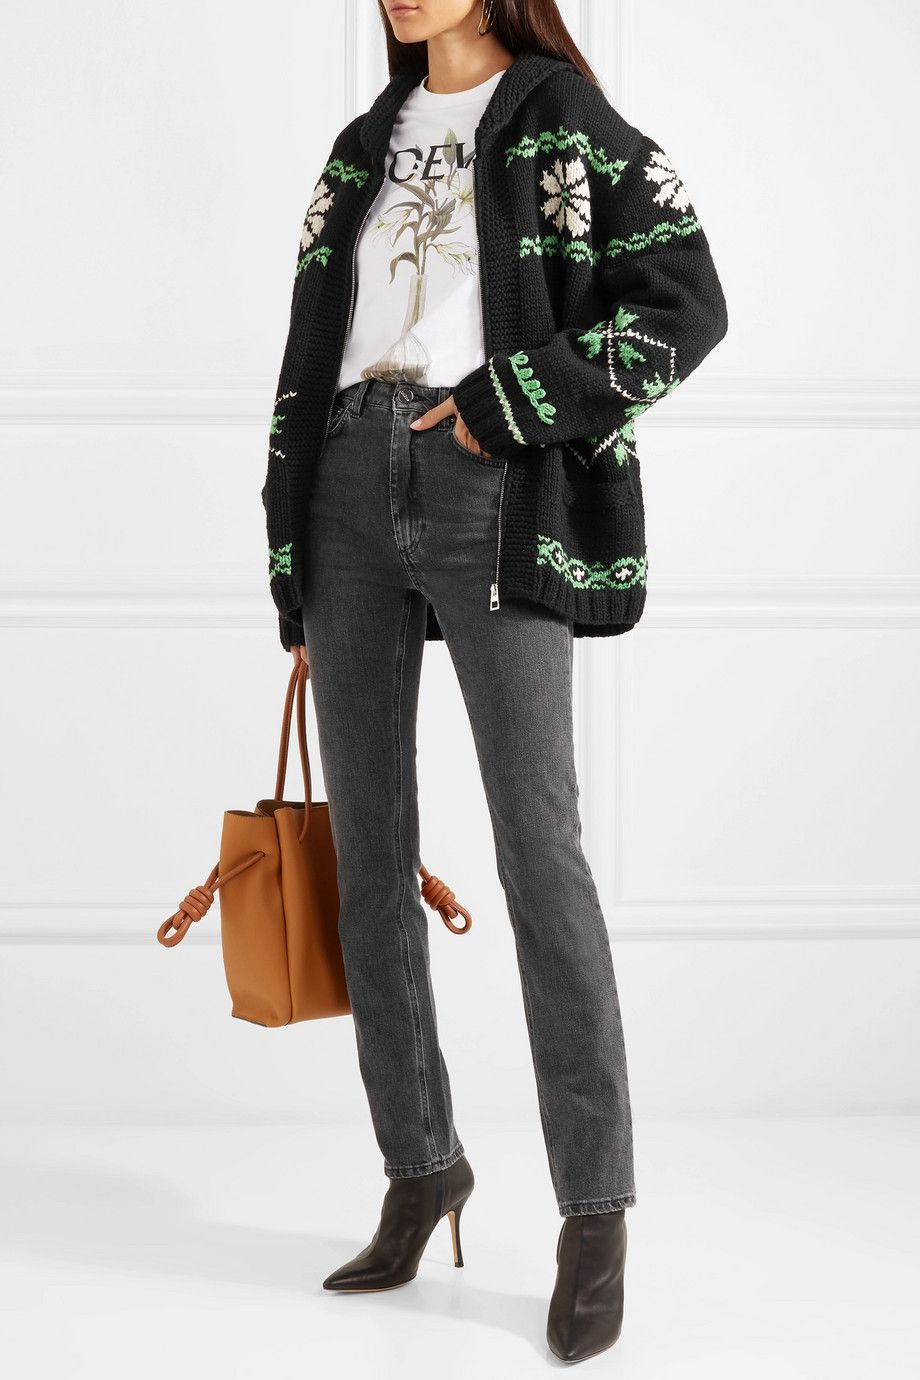 shop-loewe-cashmere-wool-blend-jacquard-fair-isle-pattern-cardigan